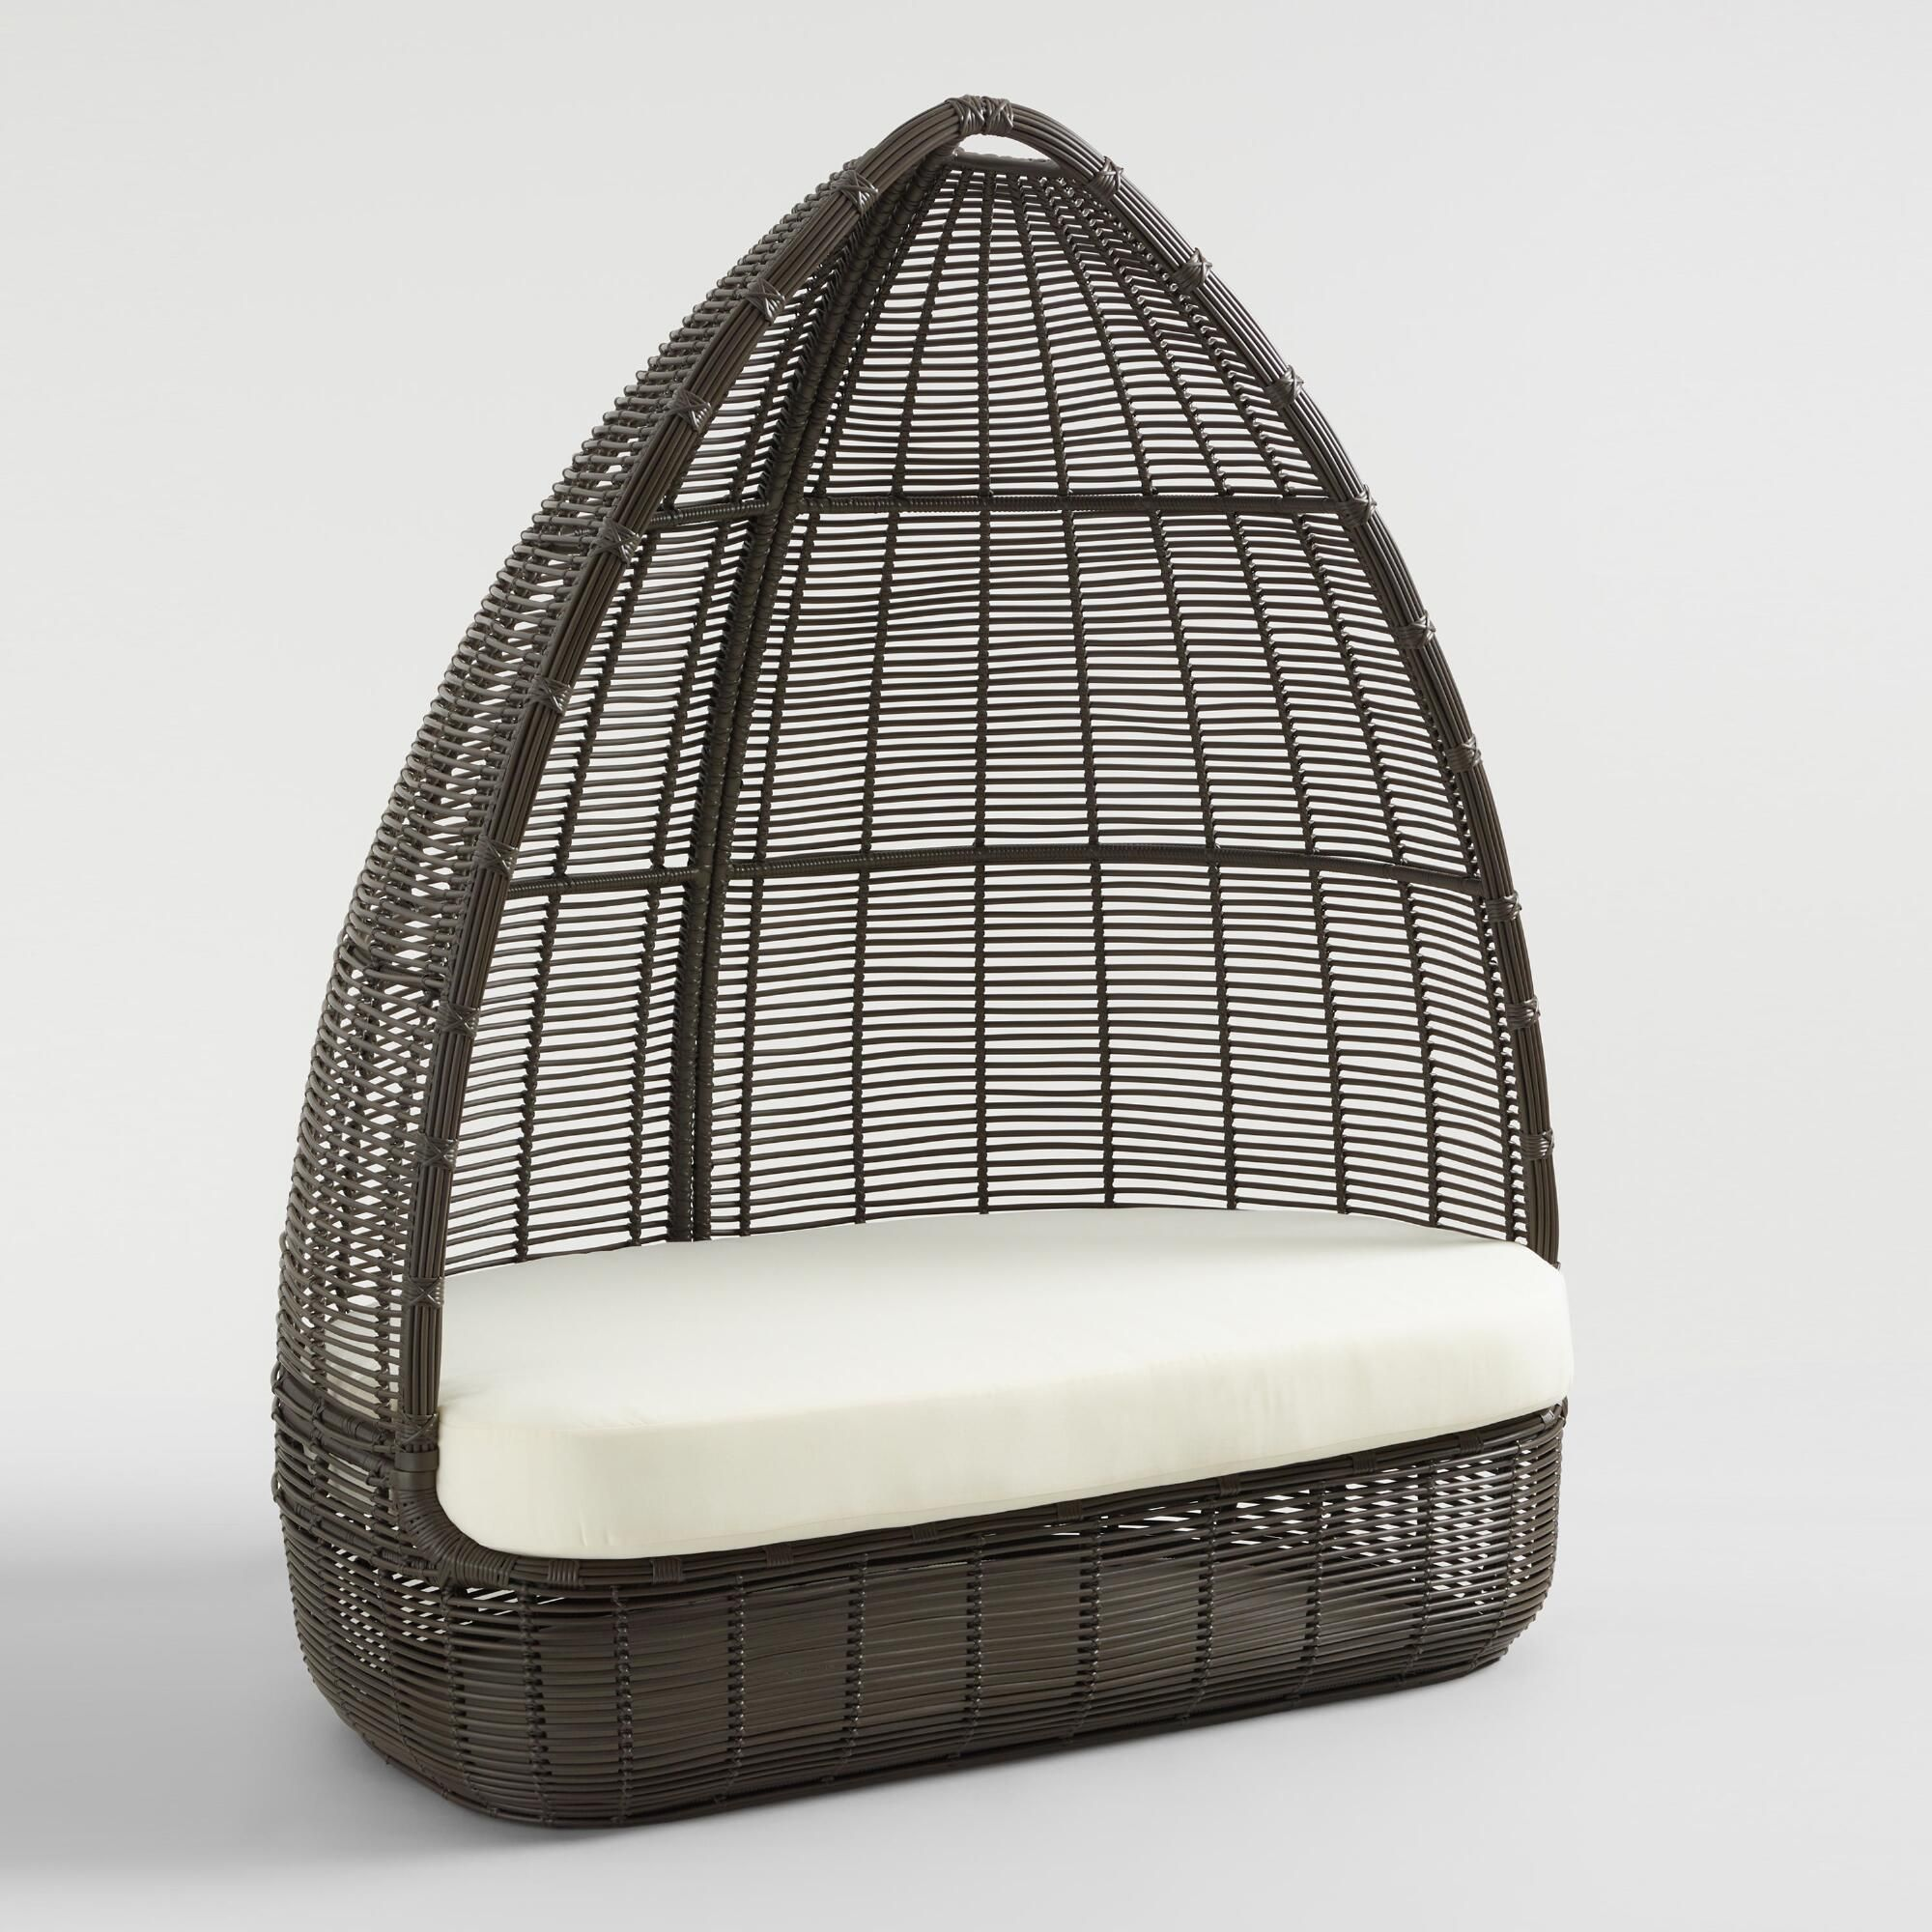 Egg Wicker Chairs Outdoor Dark Gray All Weather Wicker Maximus Egg Chair By World Market In